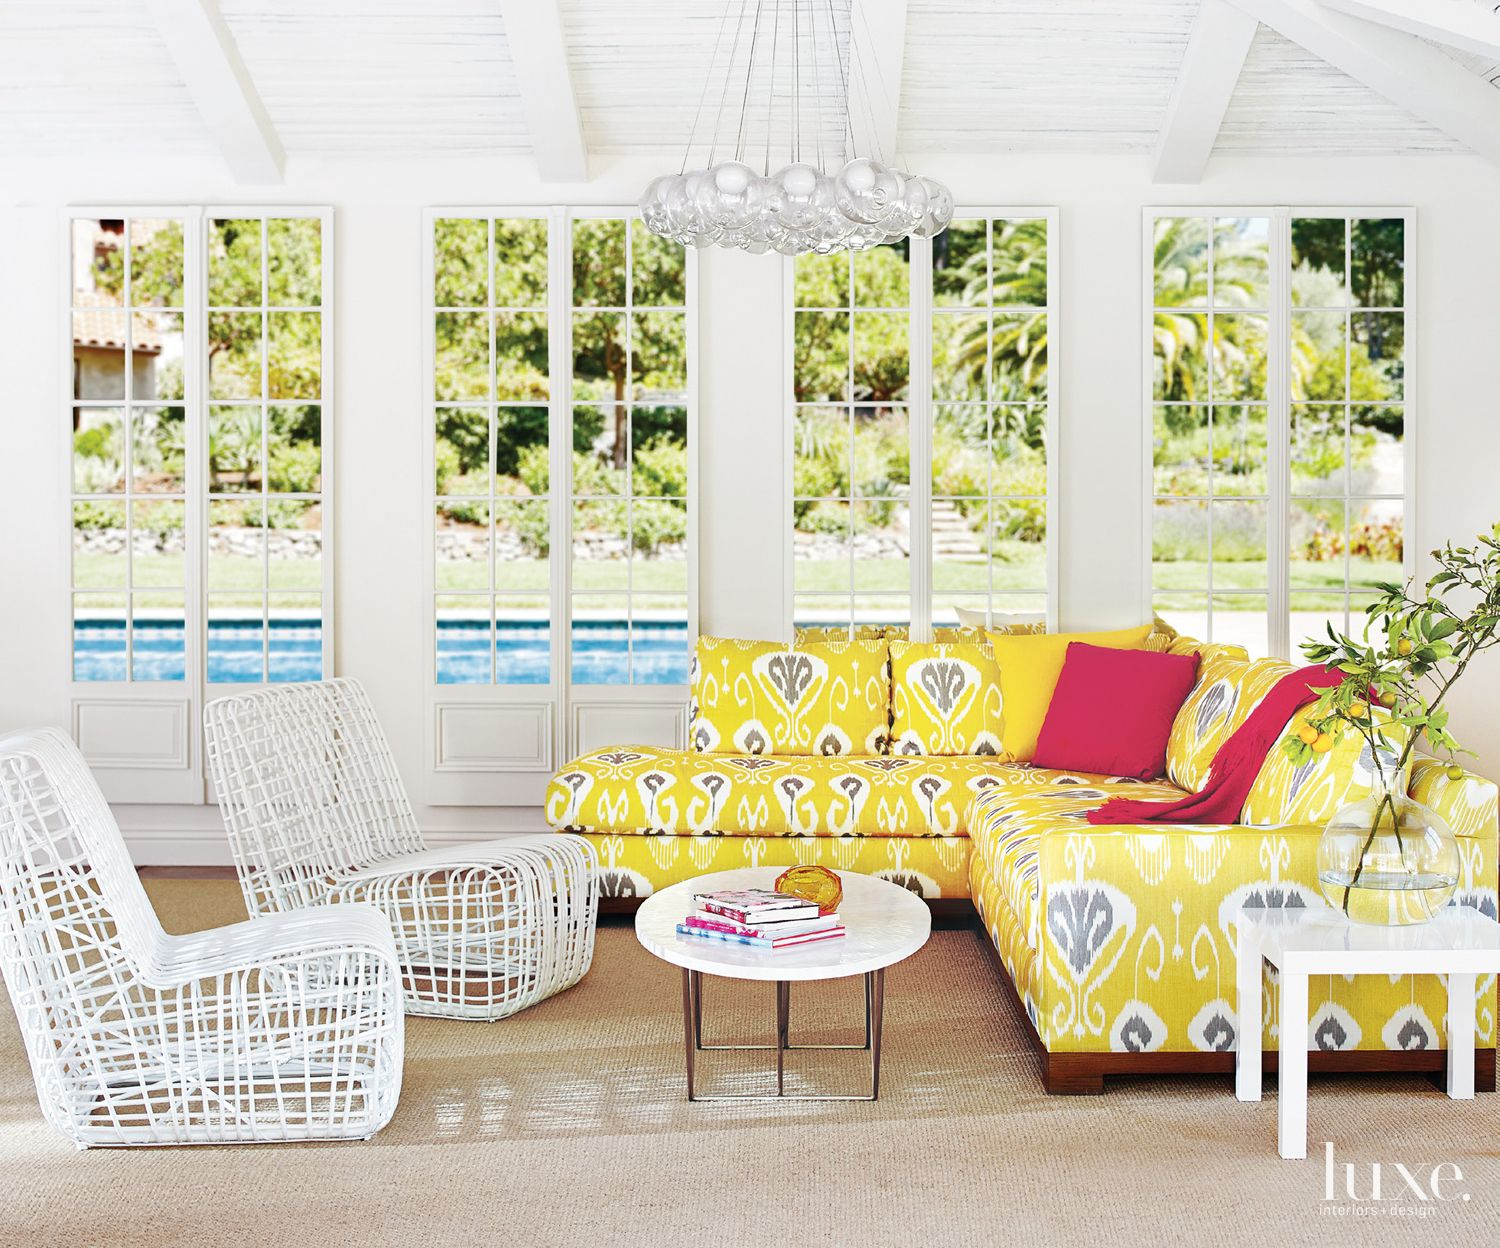 Contemporary White Poolhouse Sitting Area